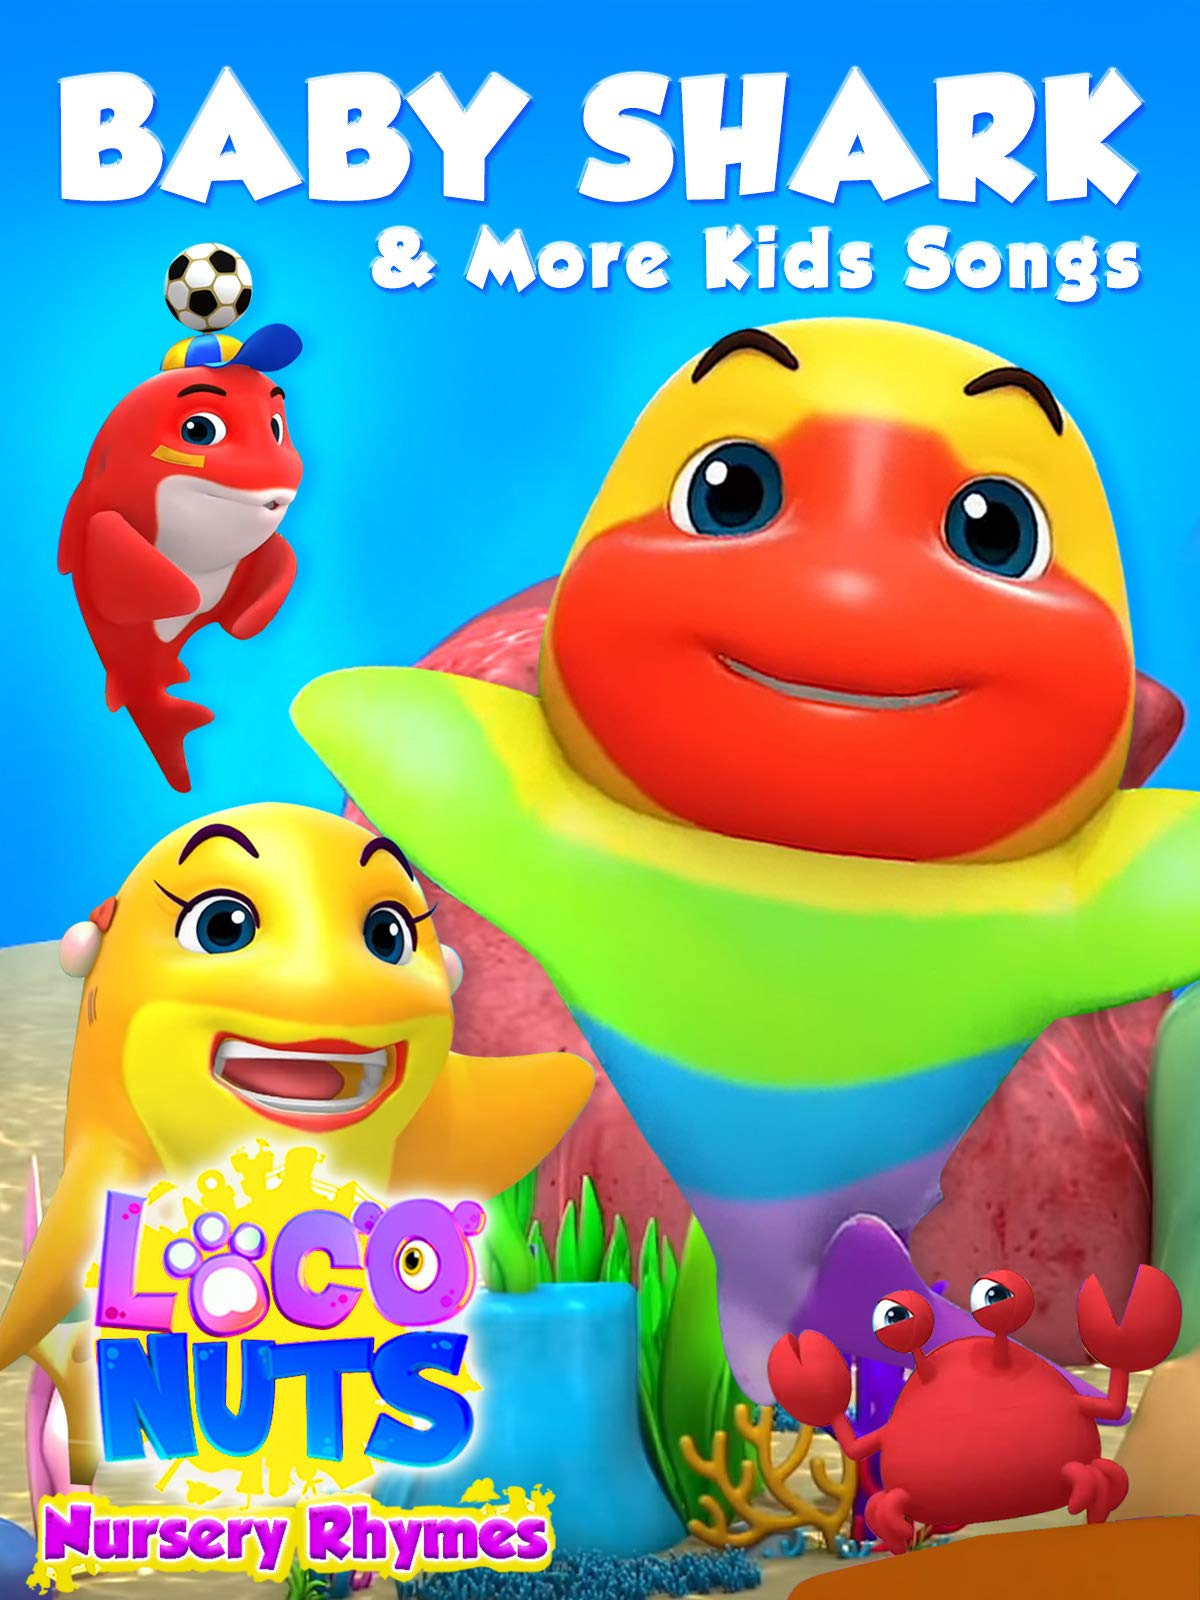 Baby Shark & More Kids Songs - Loco Nuts Nursery Rhymes